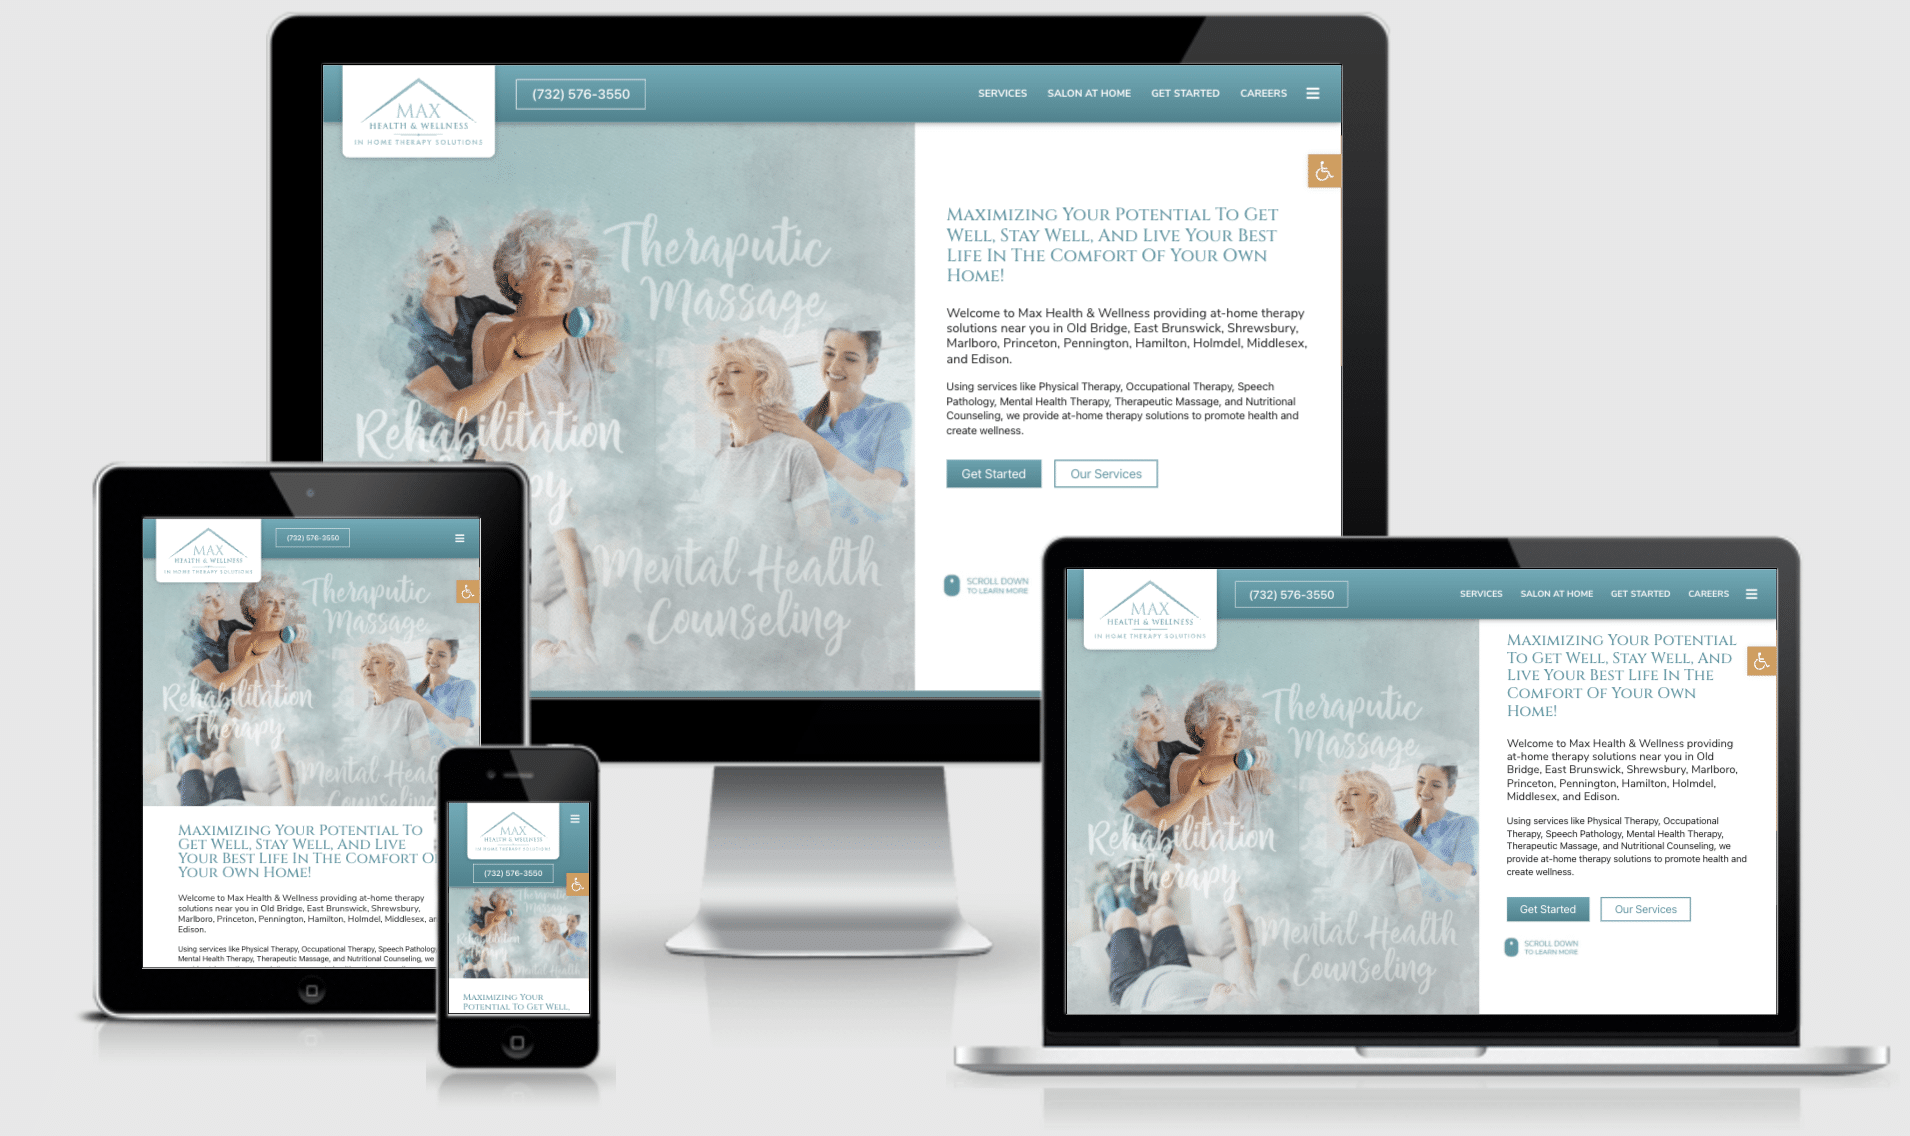 View our latest home care website design for Max Health and Wellness Group in Old Bridge, NJ! Great website, great team!